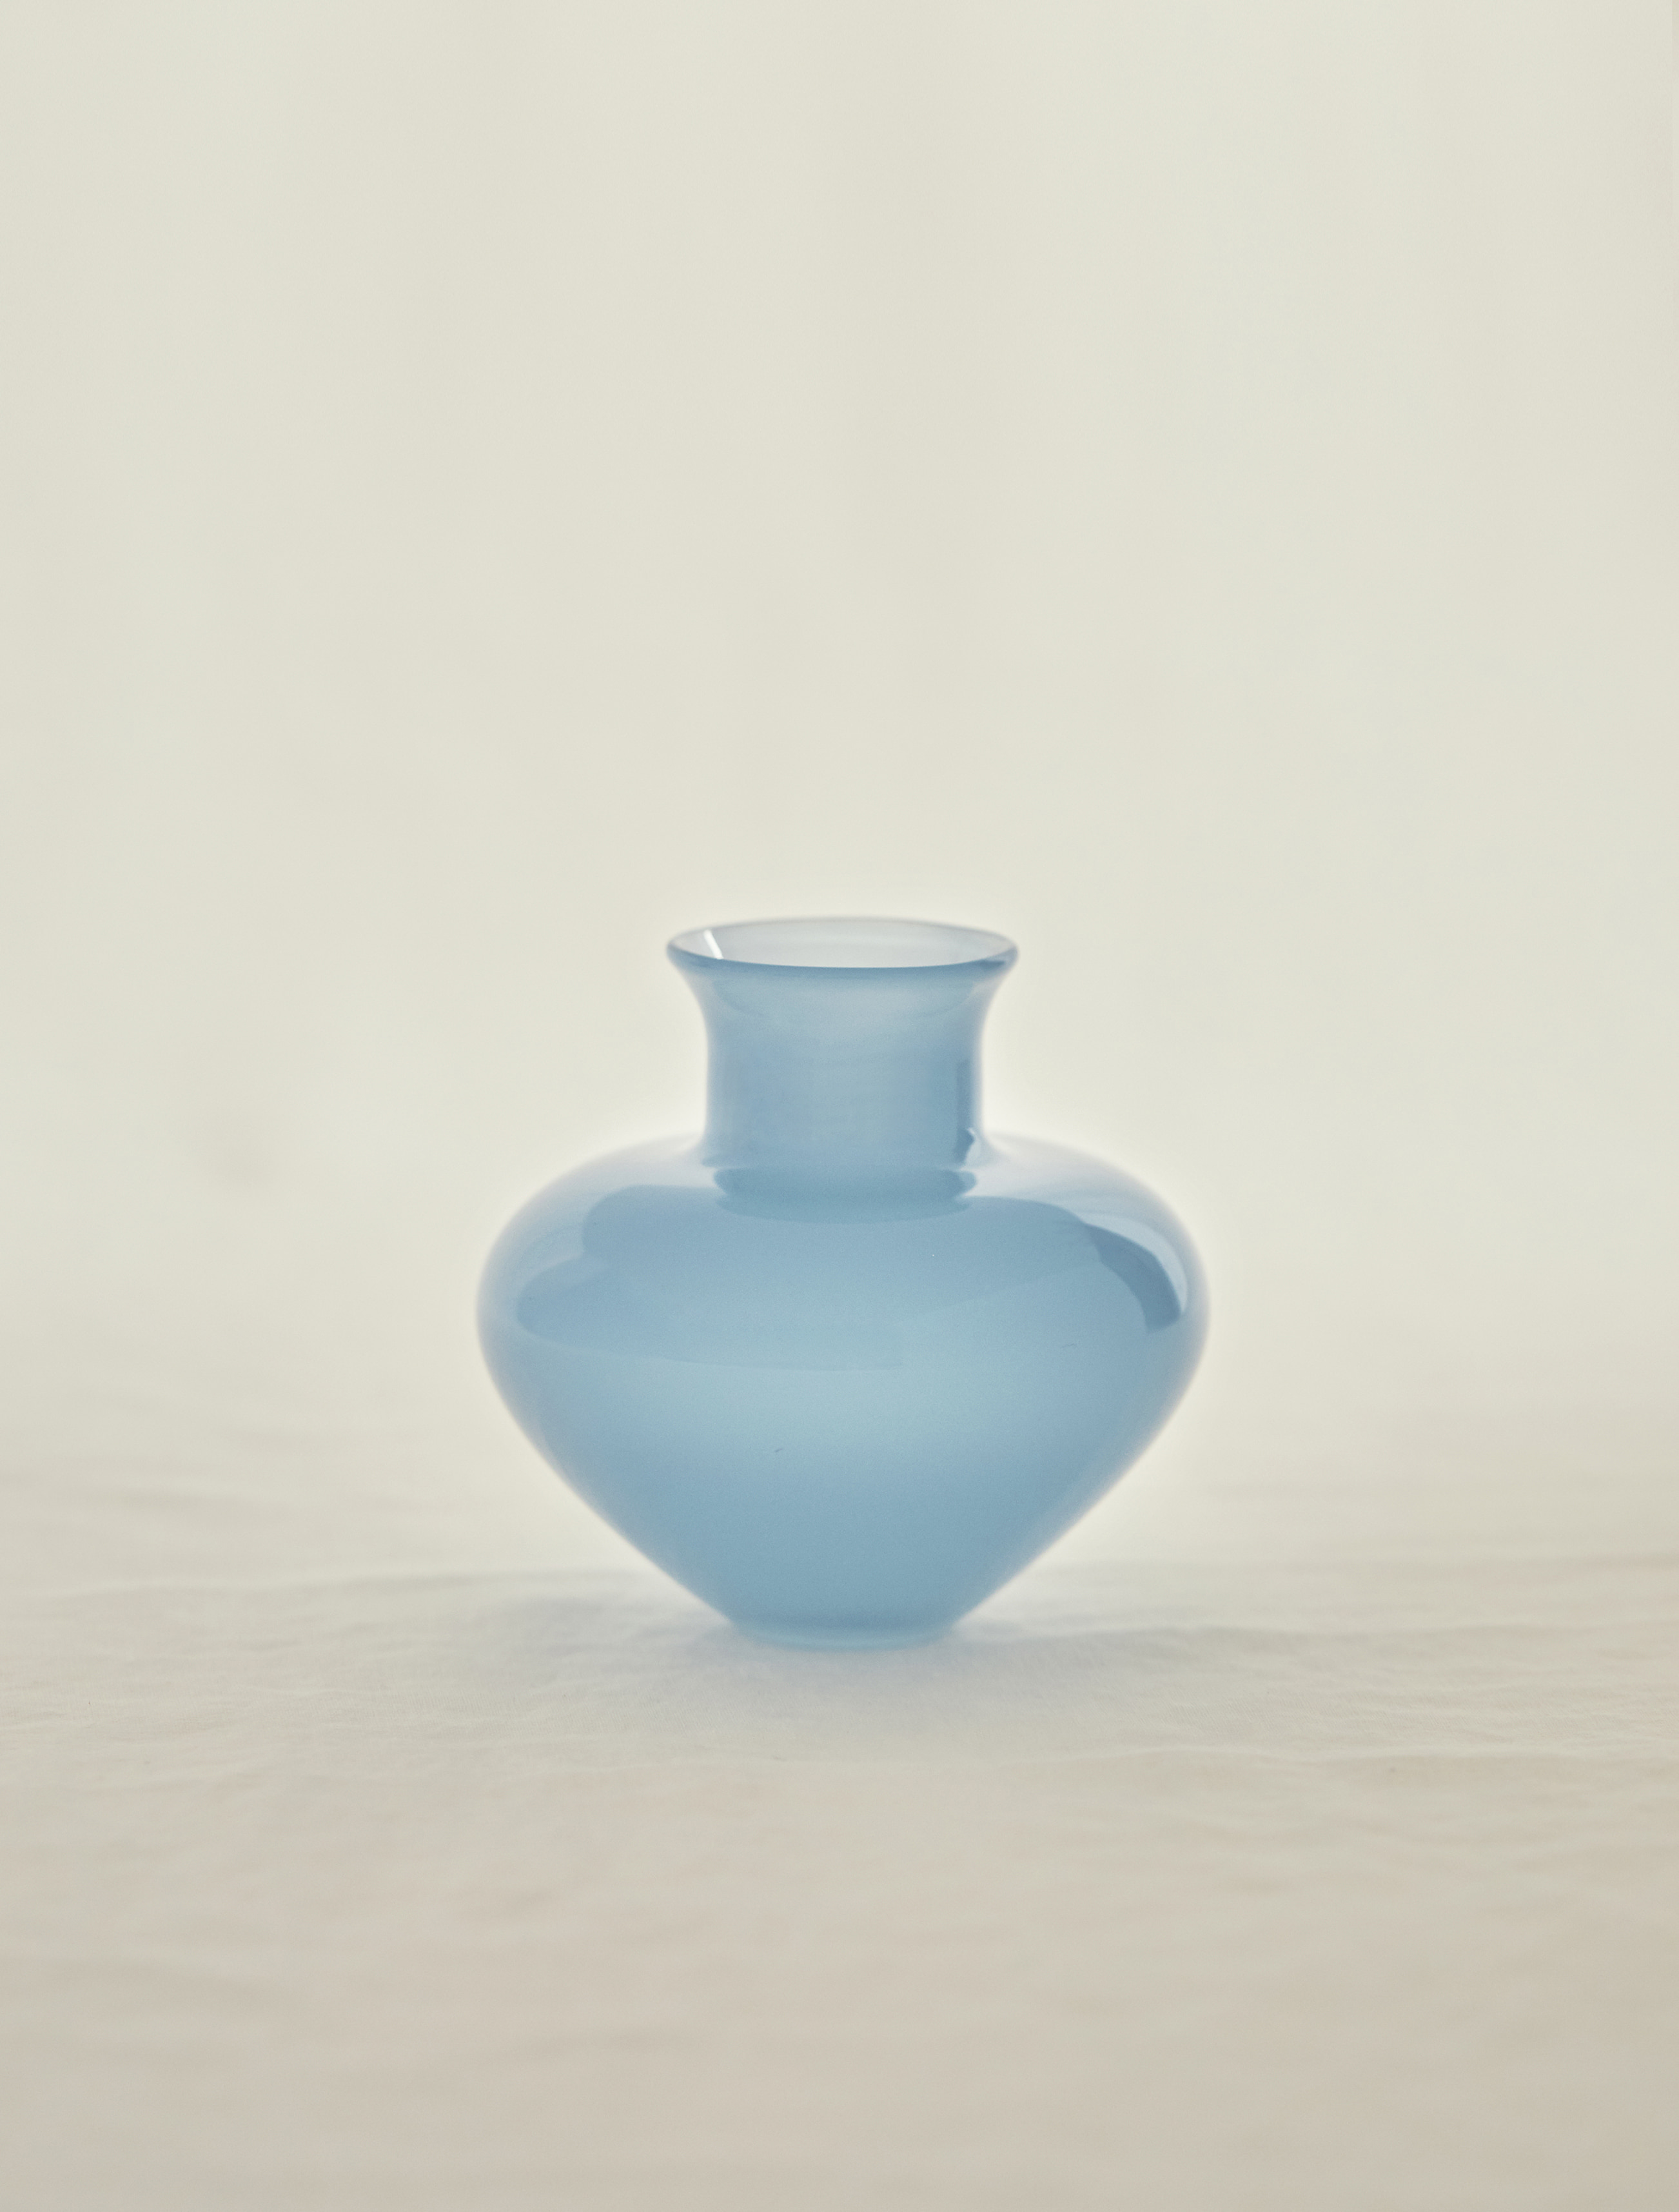 김동완 작가의 Handblown Blue Glass